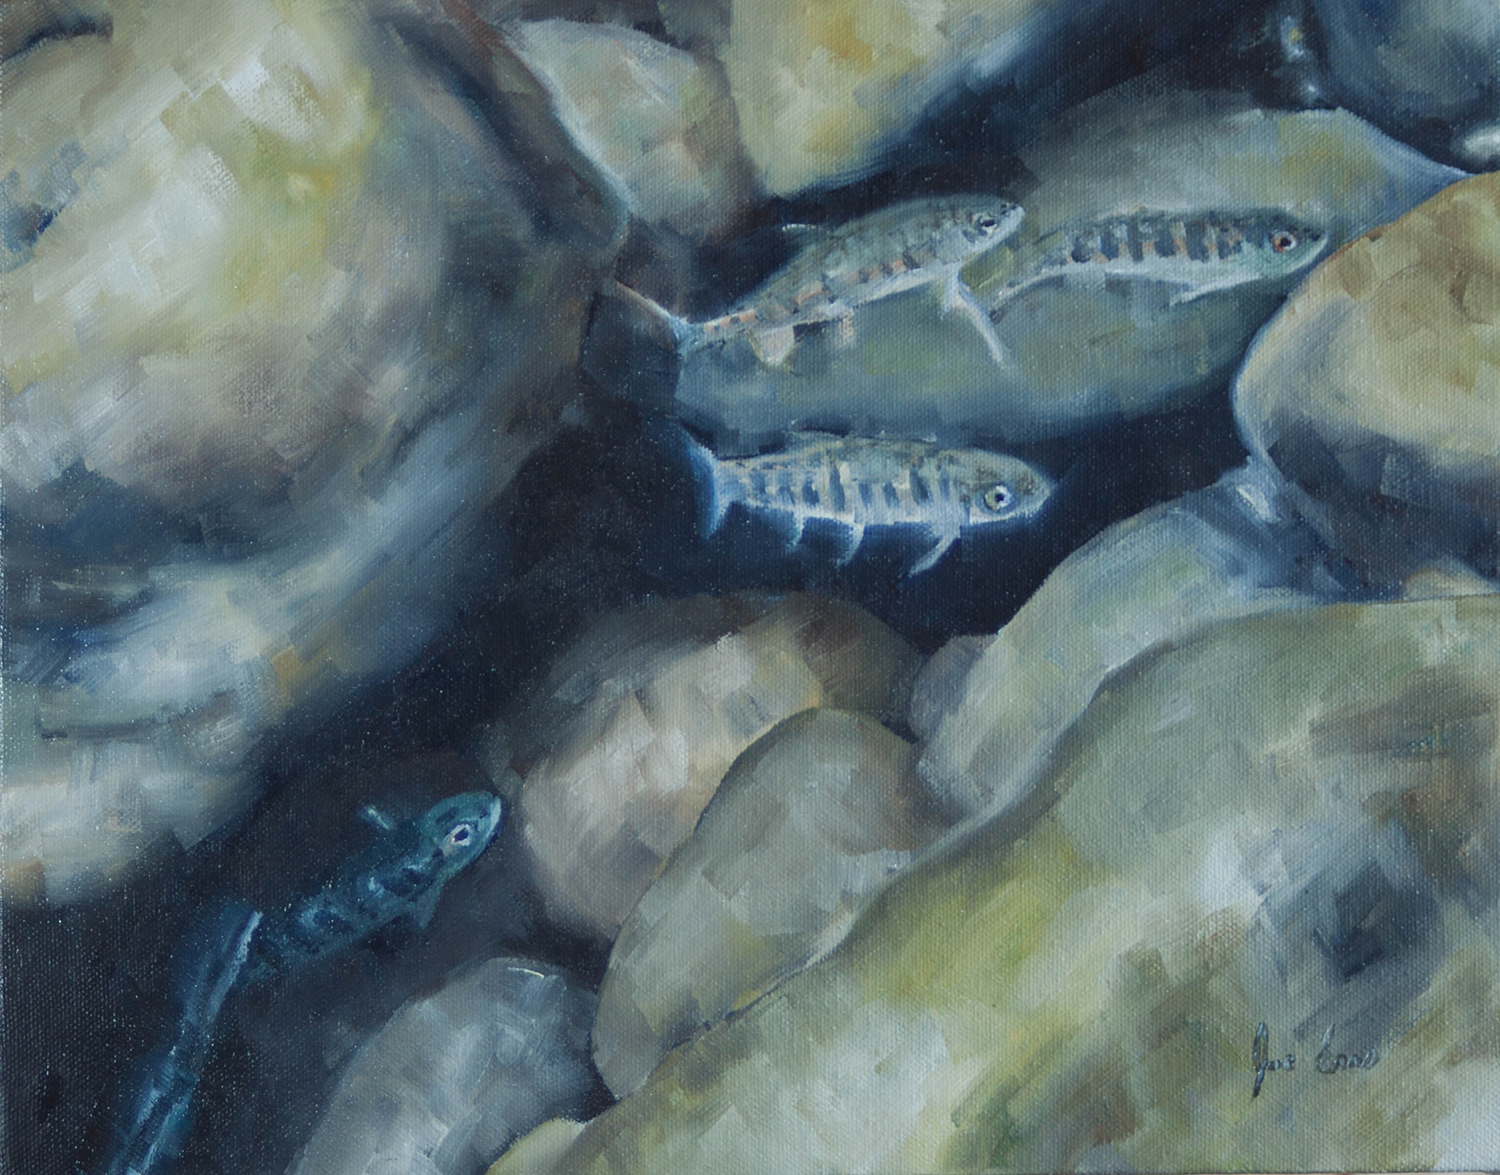 """""""Baby Rainbows 4"""" is a still life oil painting by Joe Enns done from an underwater photo that Joe took of juvenile Rainbow Trout (or Steelhead) in a tributary of Okanagan River in British Columbia."""